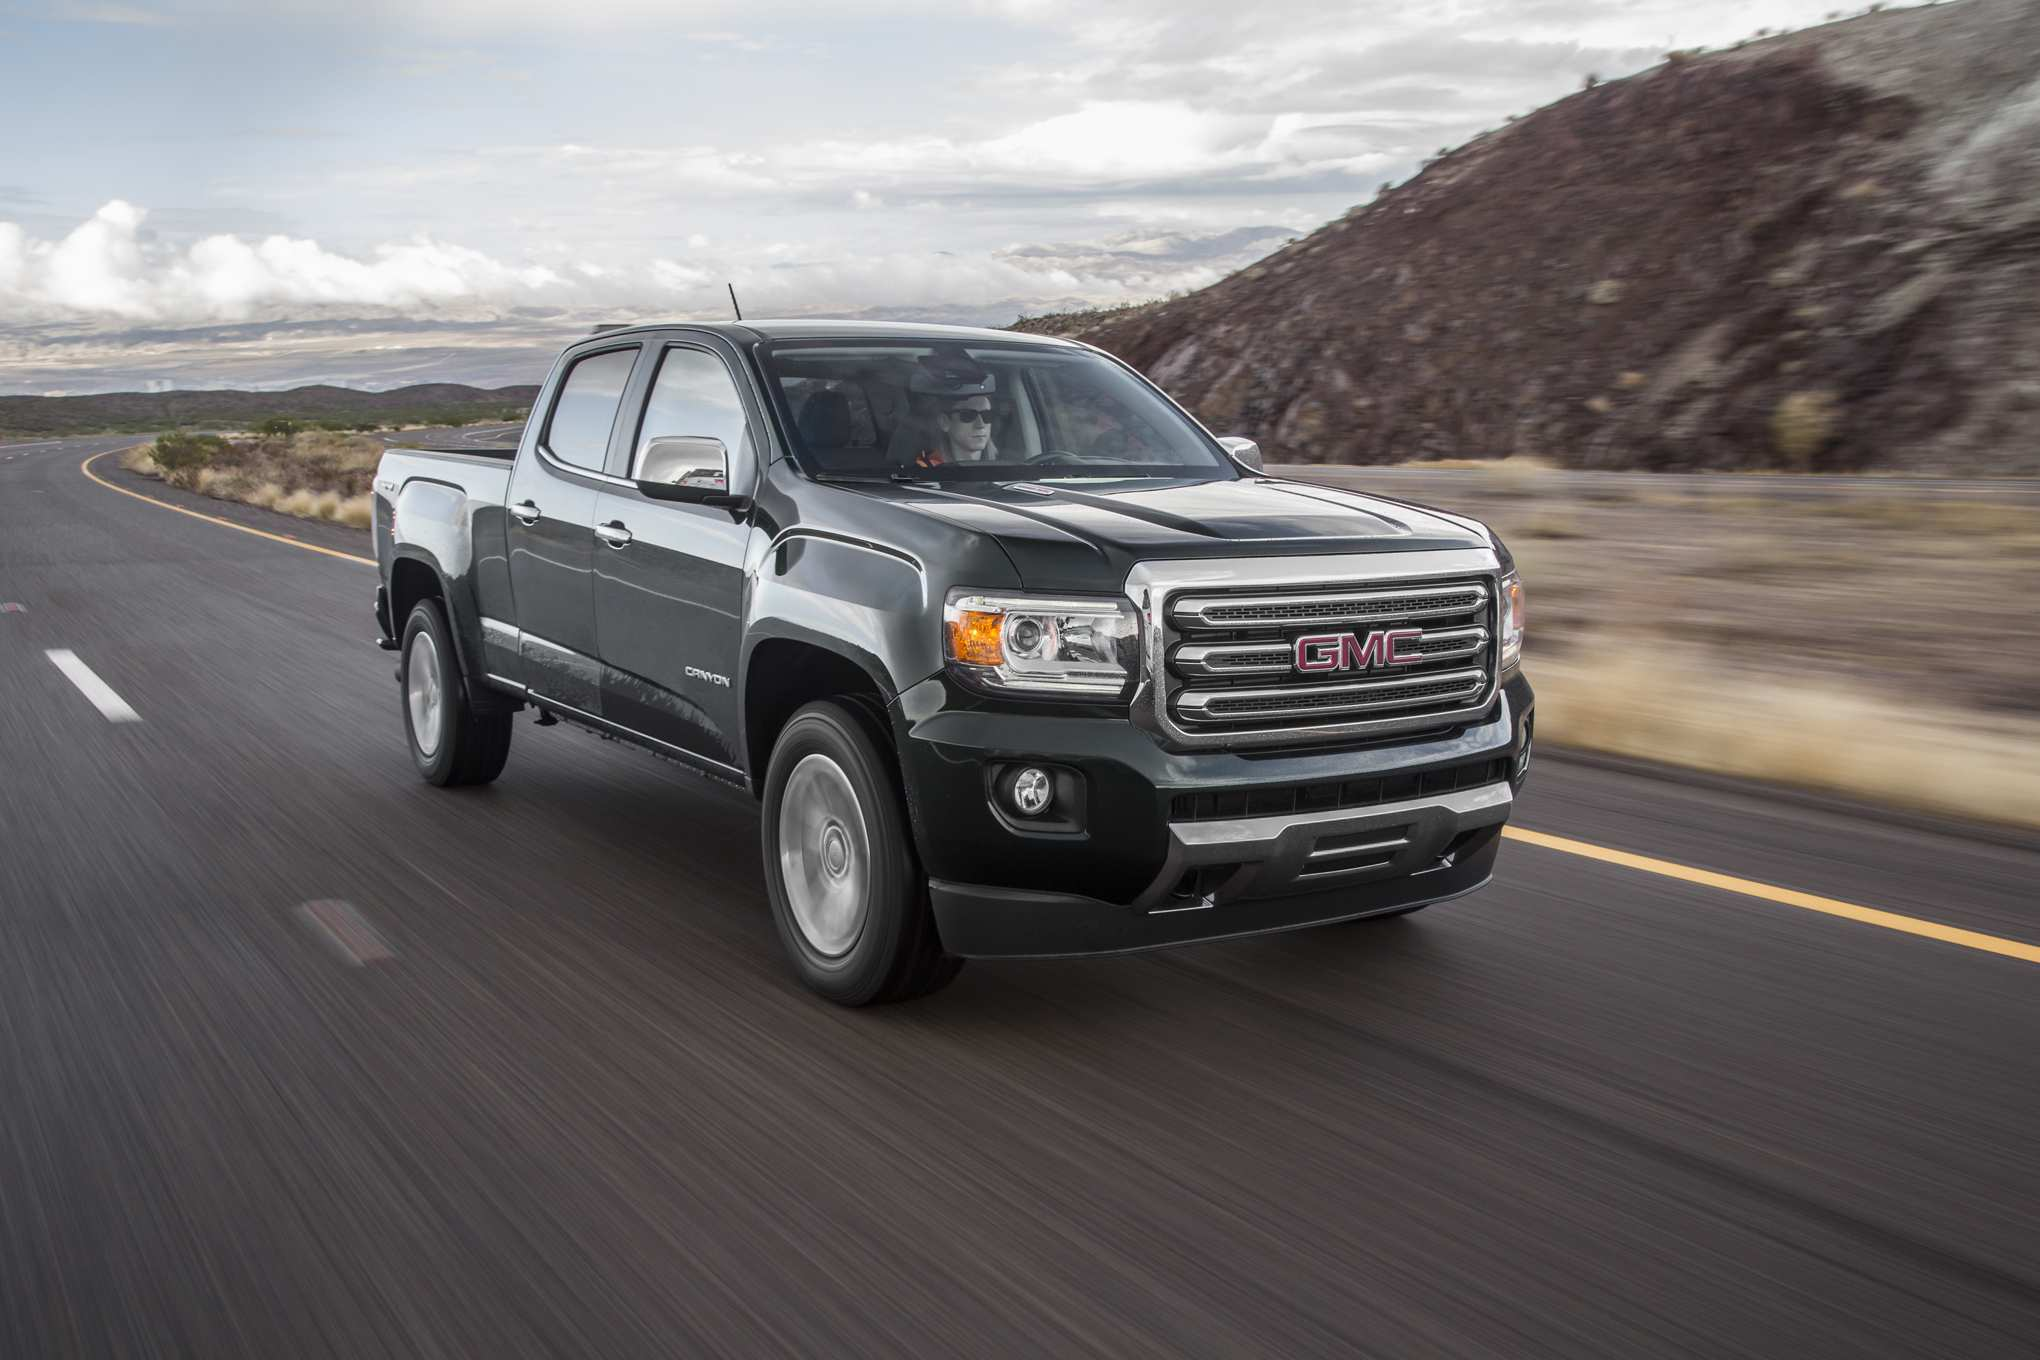 53 Best Review 2019 Gmc Canyon Rumors Exterior for 2019 Gmc Canyon Rumors